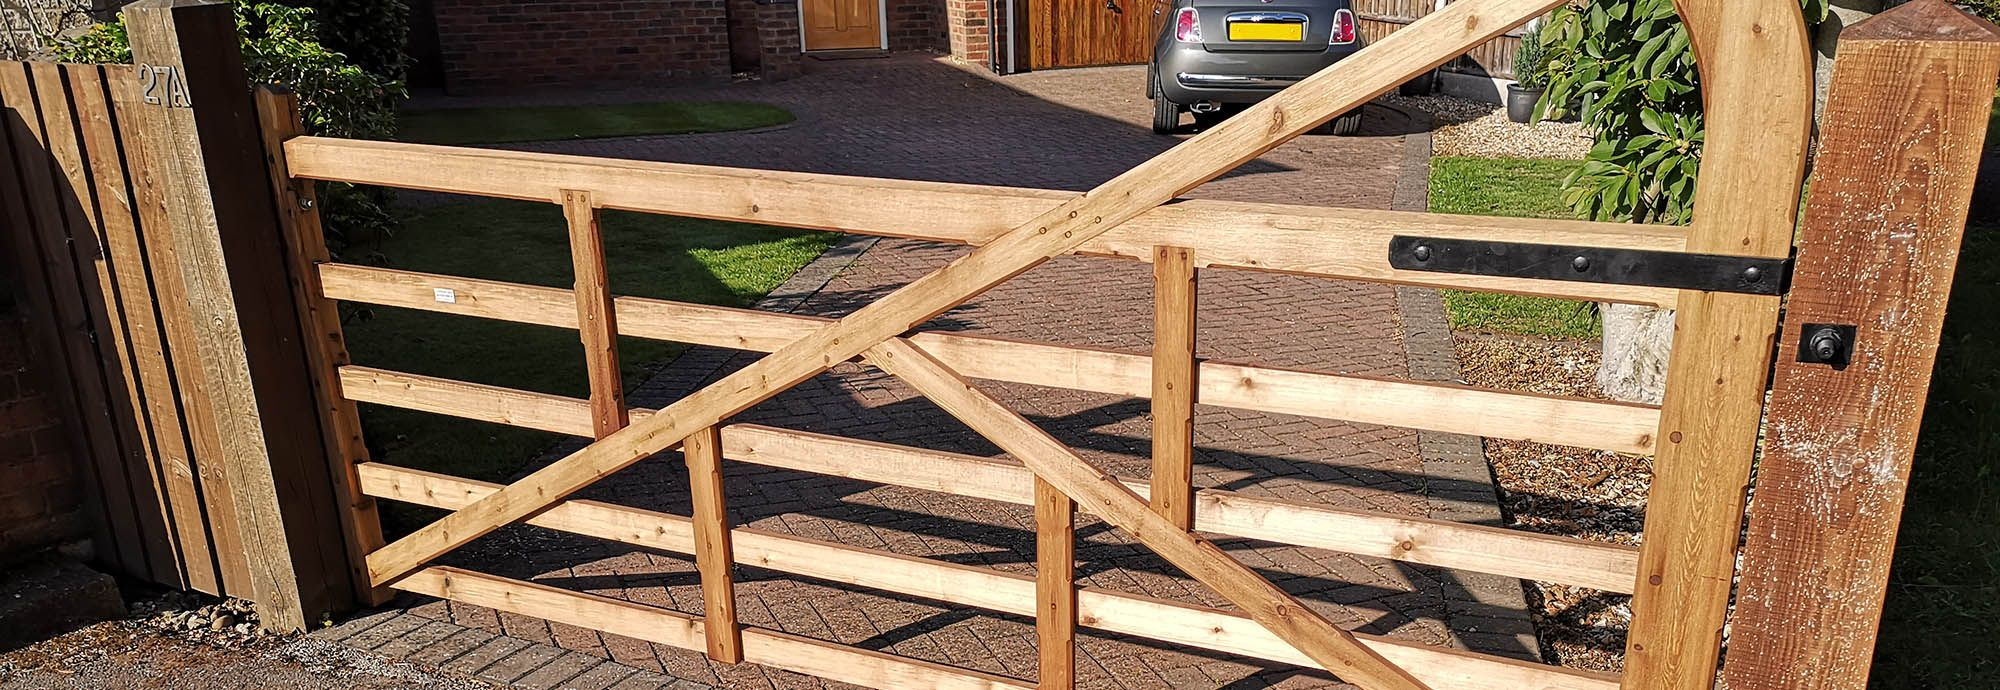 Security Fencing & Gates